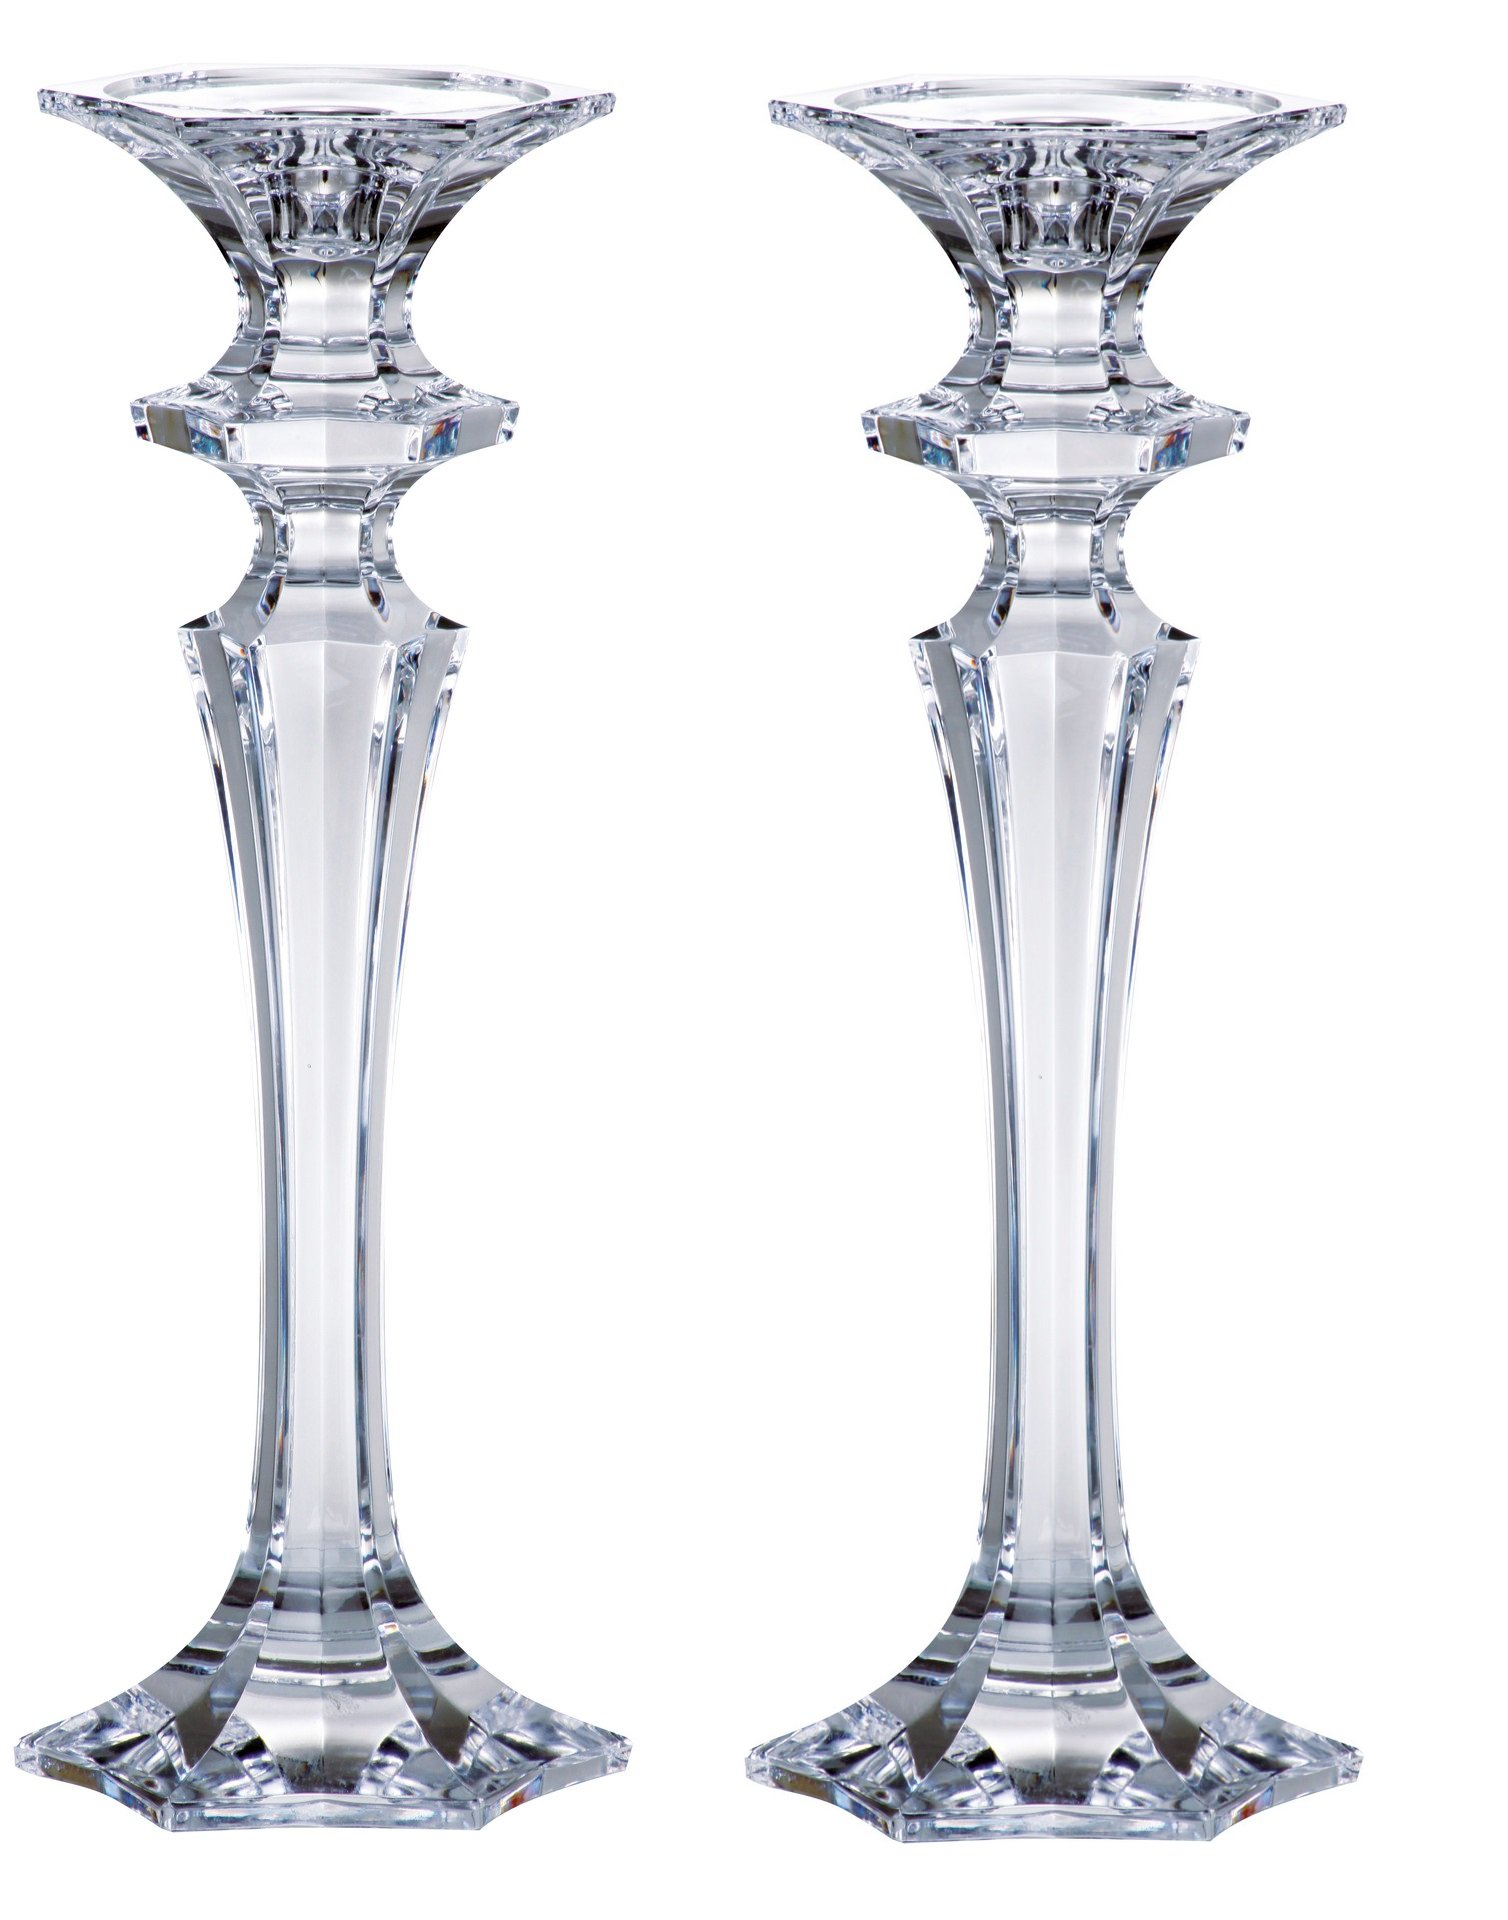 Barski - Beautiful Crystalline Candlesticks - Candlestick is 8 '' H - Made in Europe - Pair of 2